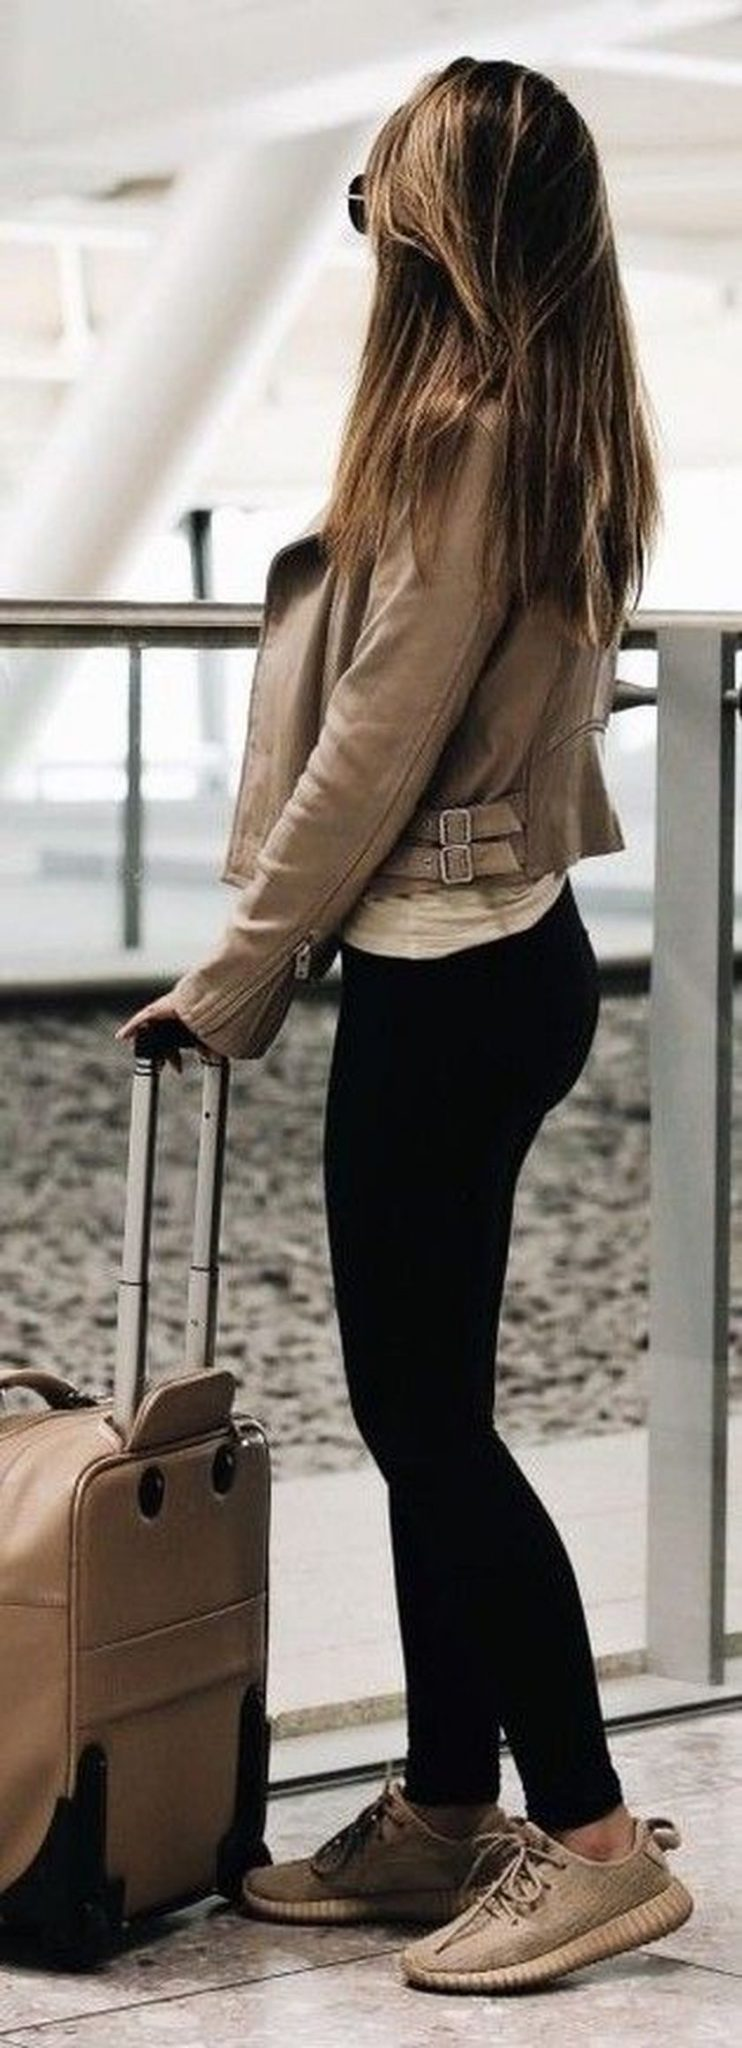 Summer airplane outfits travel style 24